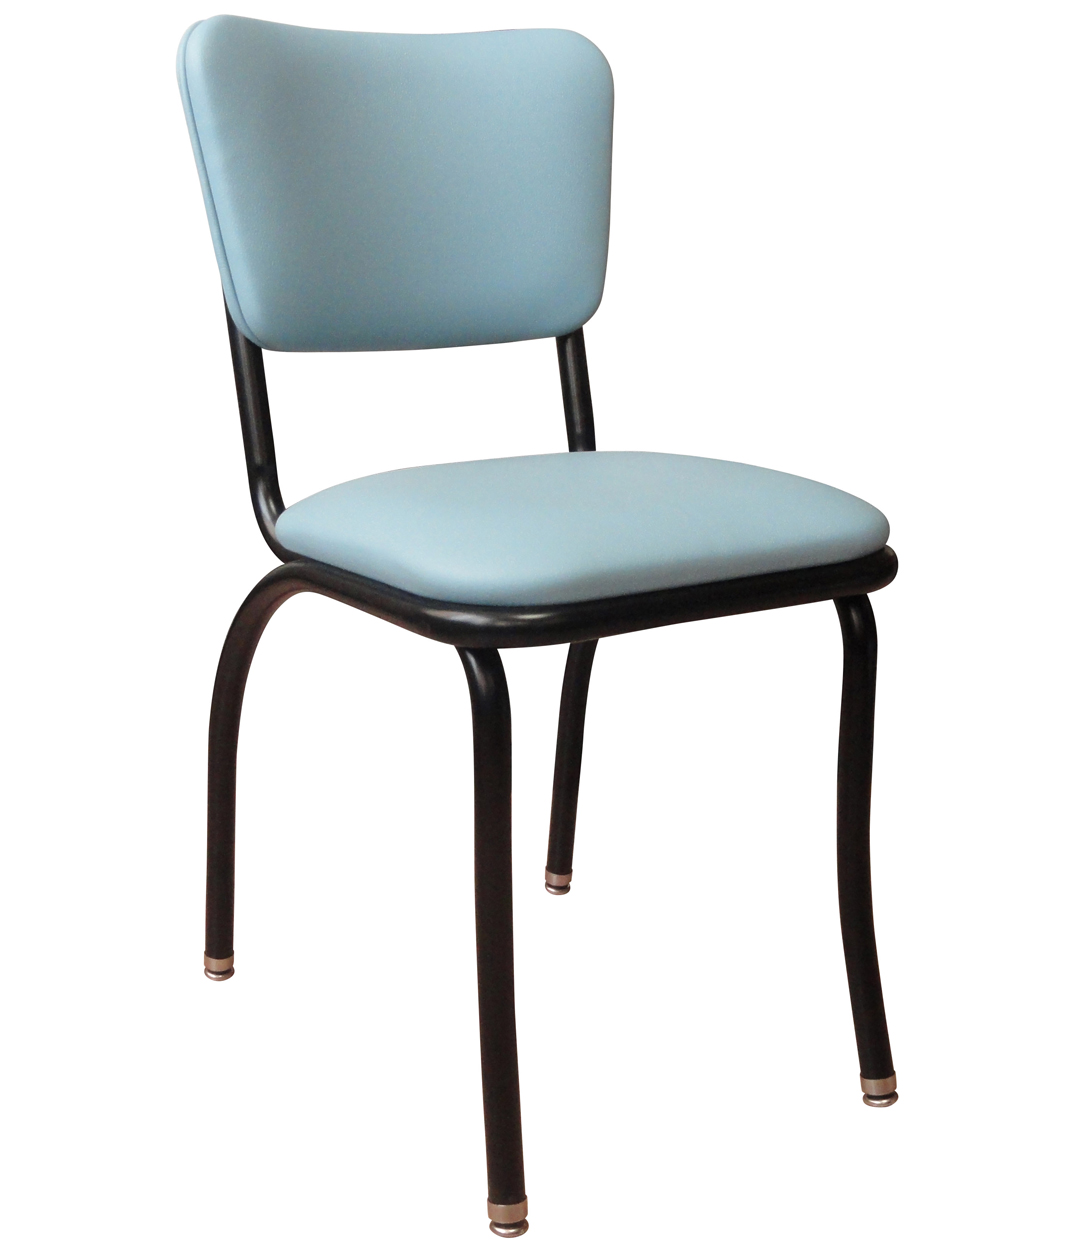 921 - New Retro Dining Classic Curved Back Diner Chair